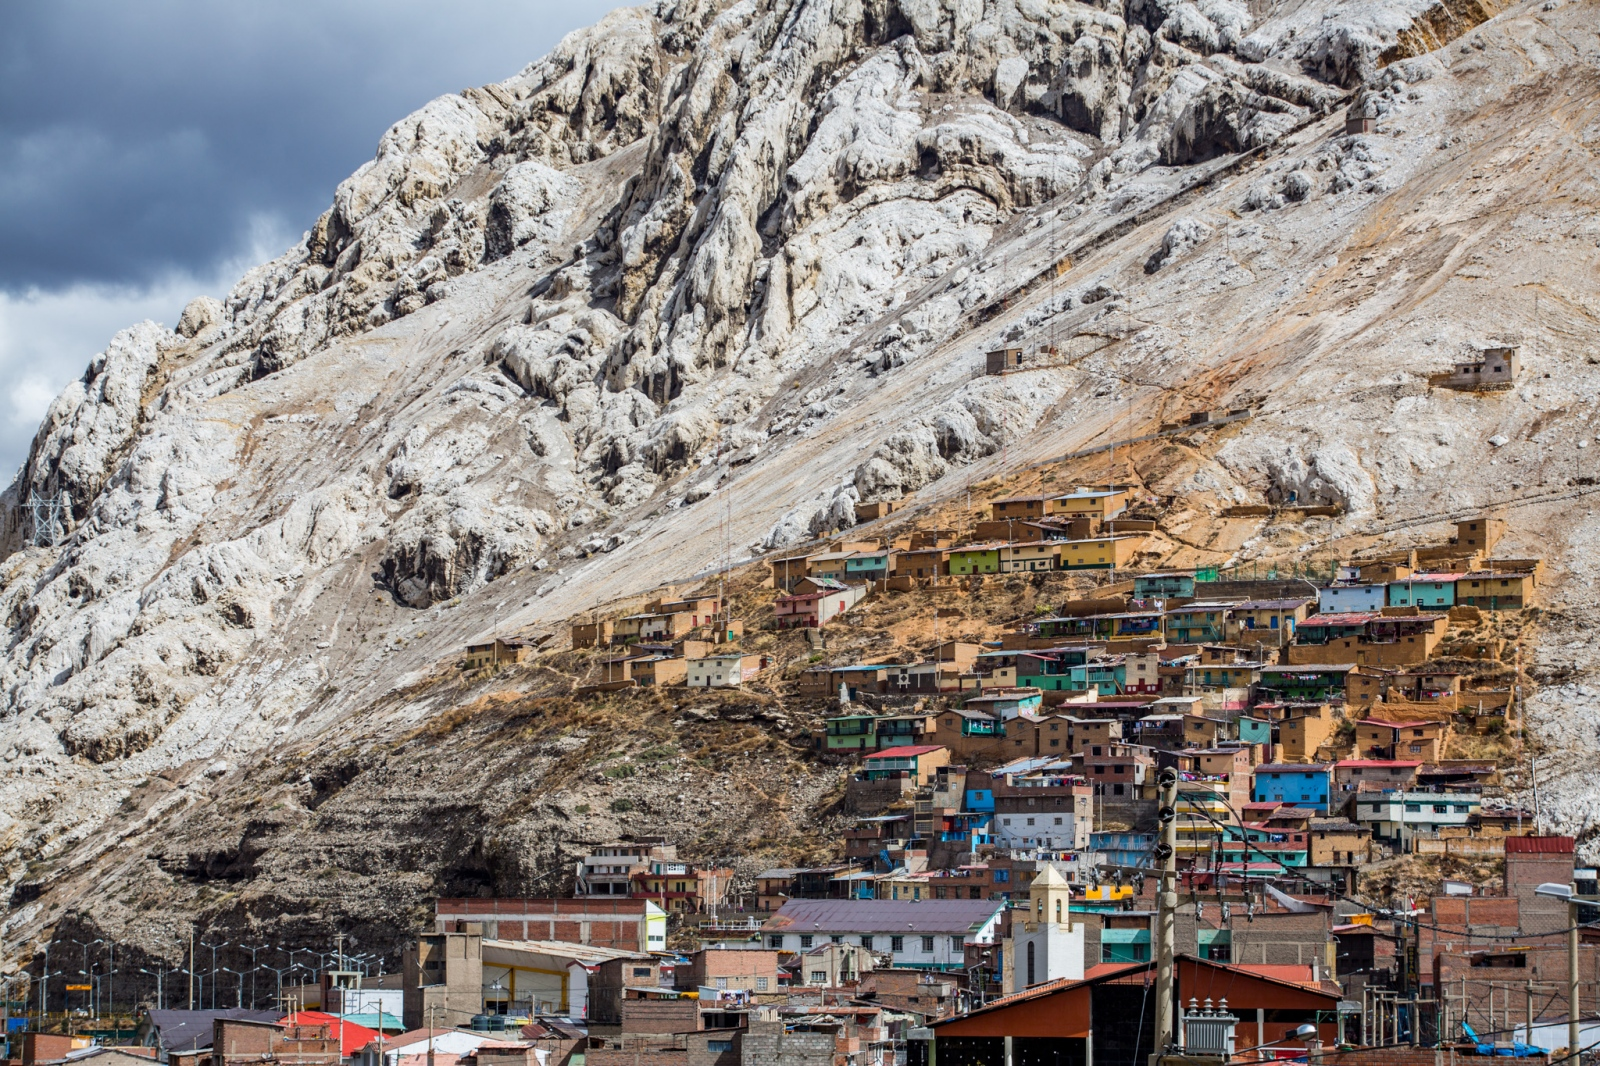 La Oroya, one of the most polluted cities in the world. From a Pulitzer Center for Crisis Reporting funded project on the environmental impacts of mining in the highlands of Peru.